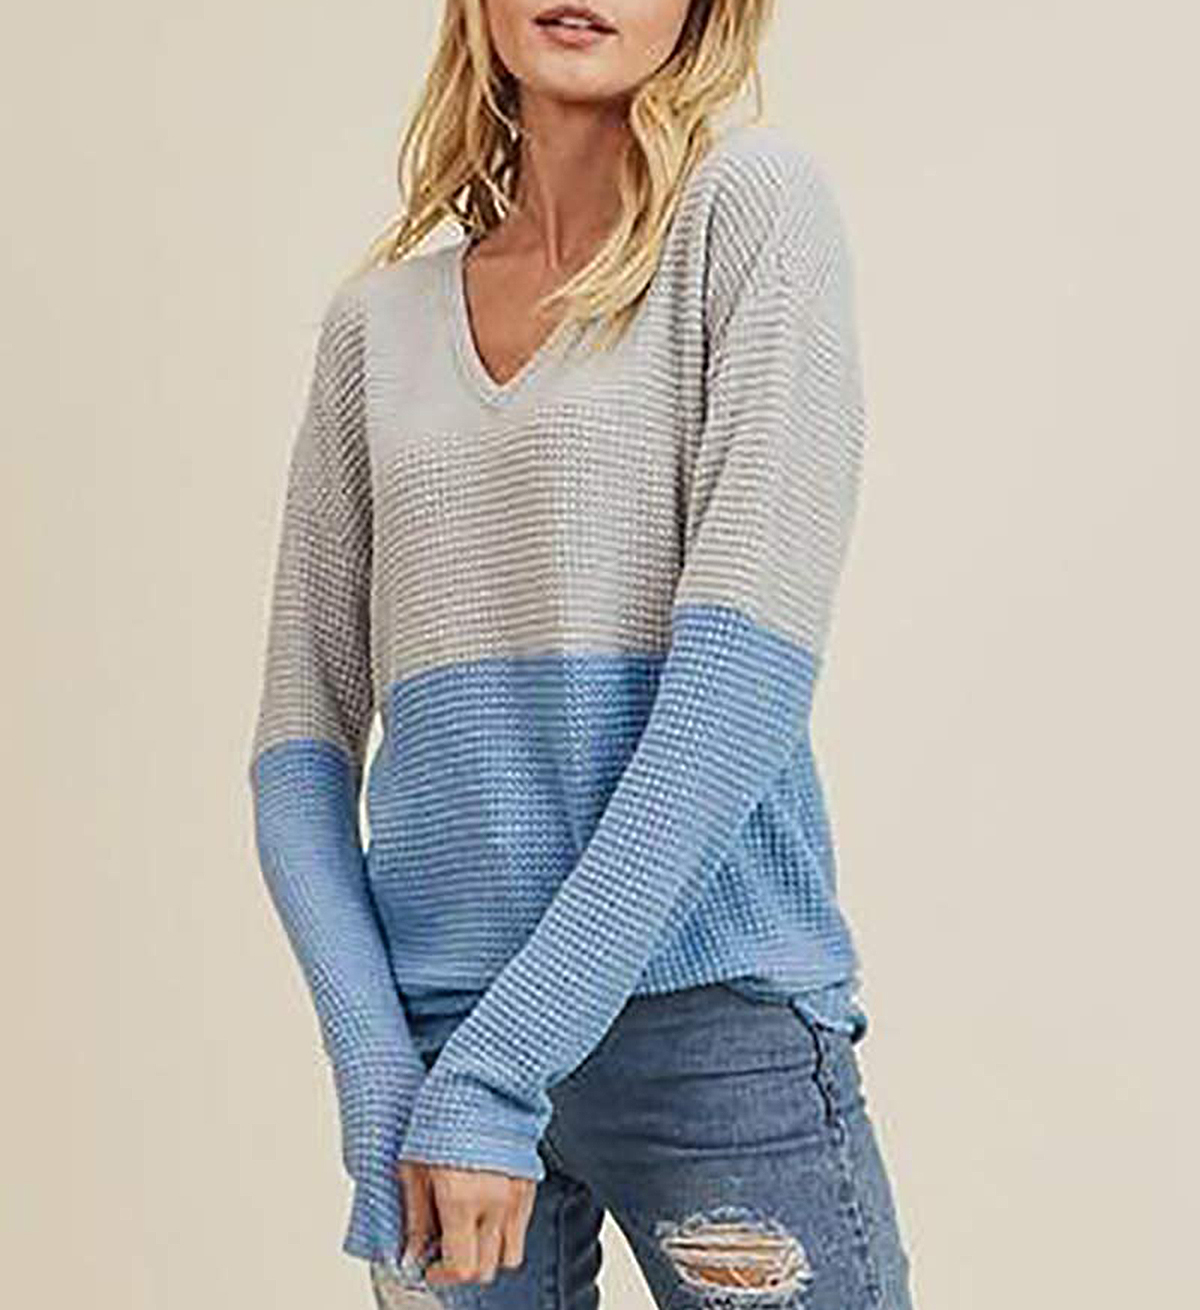 Dellytop Long-Sleeve Thermal Waffle Knit Top